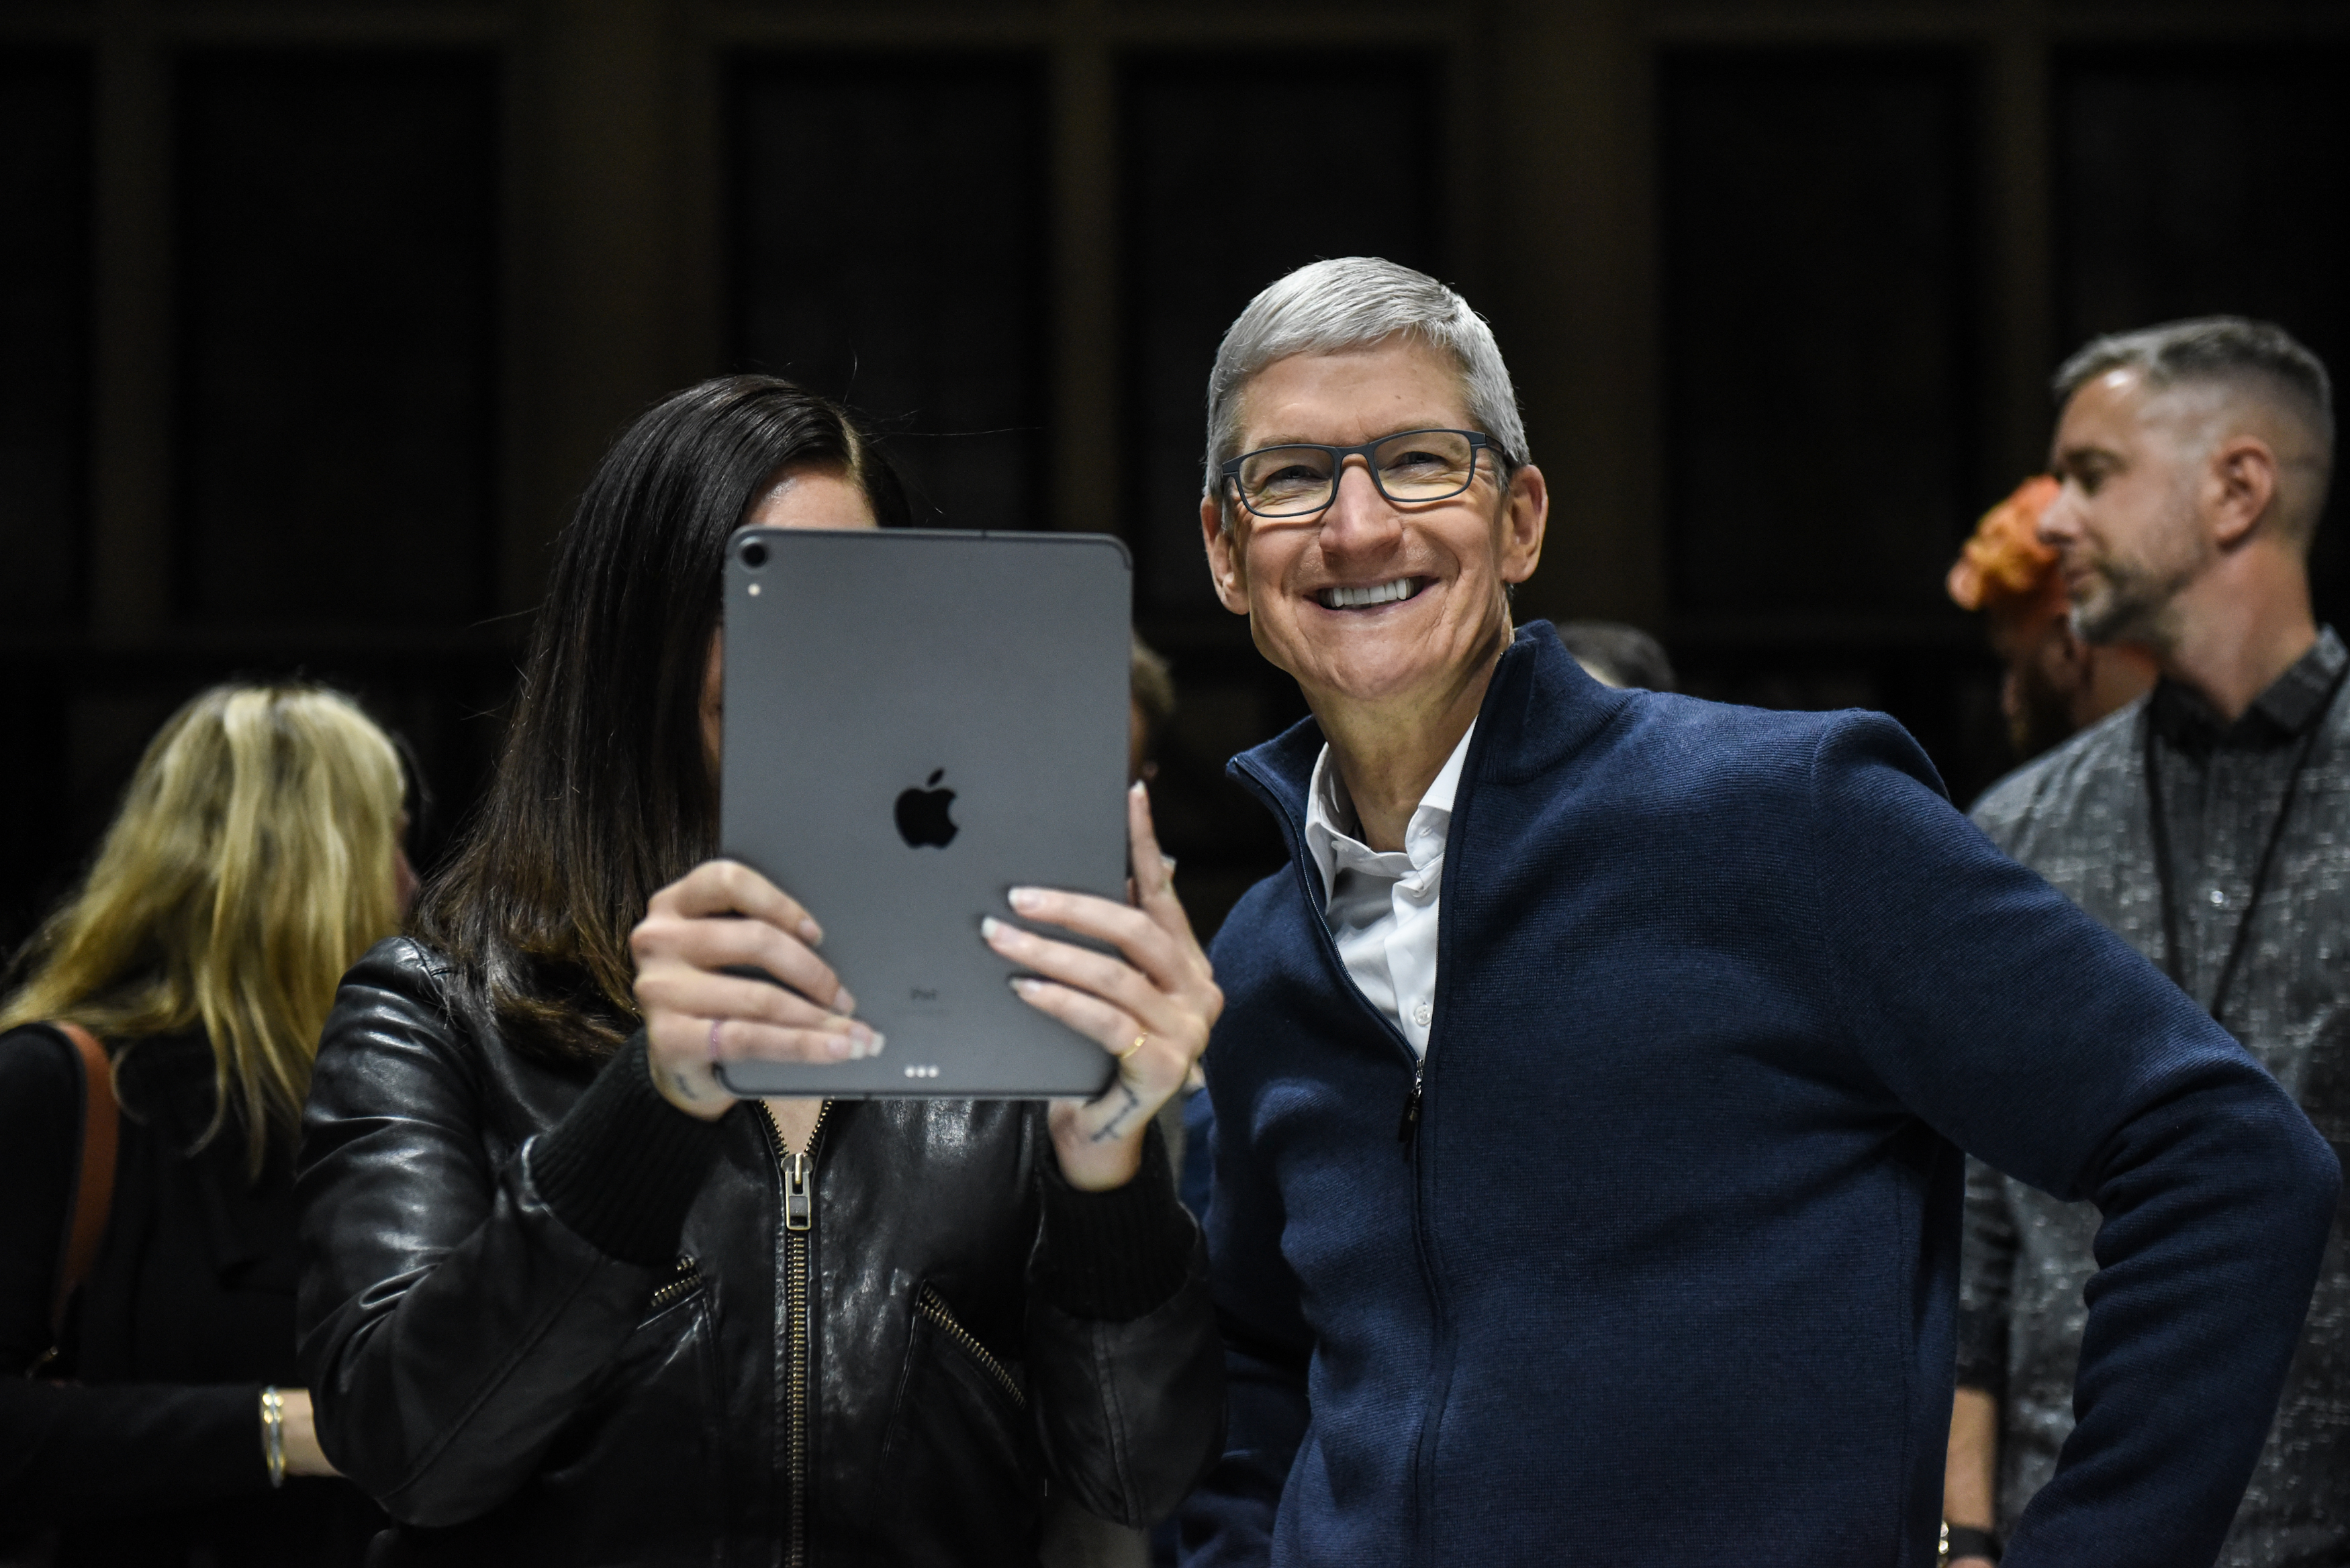 Tim Cook, CEO of Apple laughs while Lana Del Rey (with iPad) takes a photo.